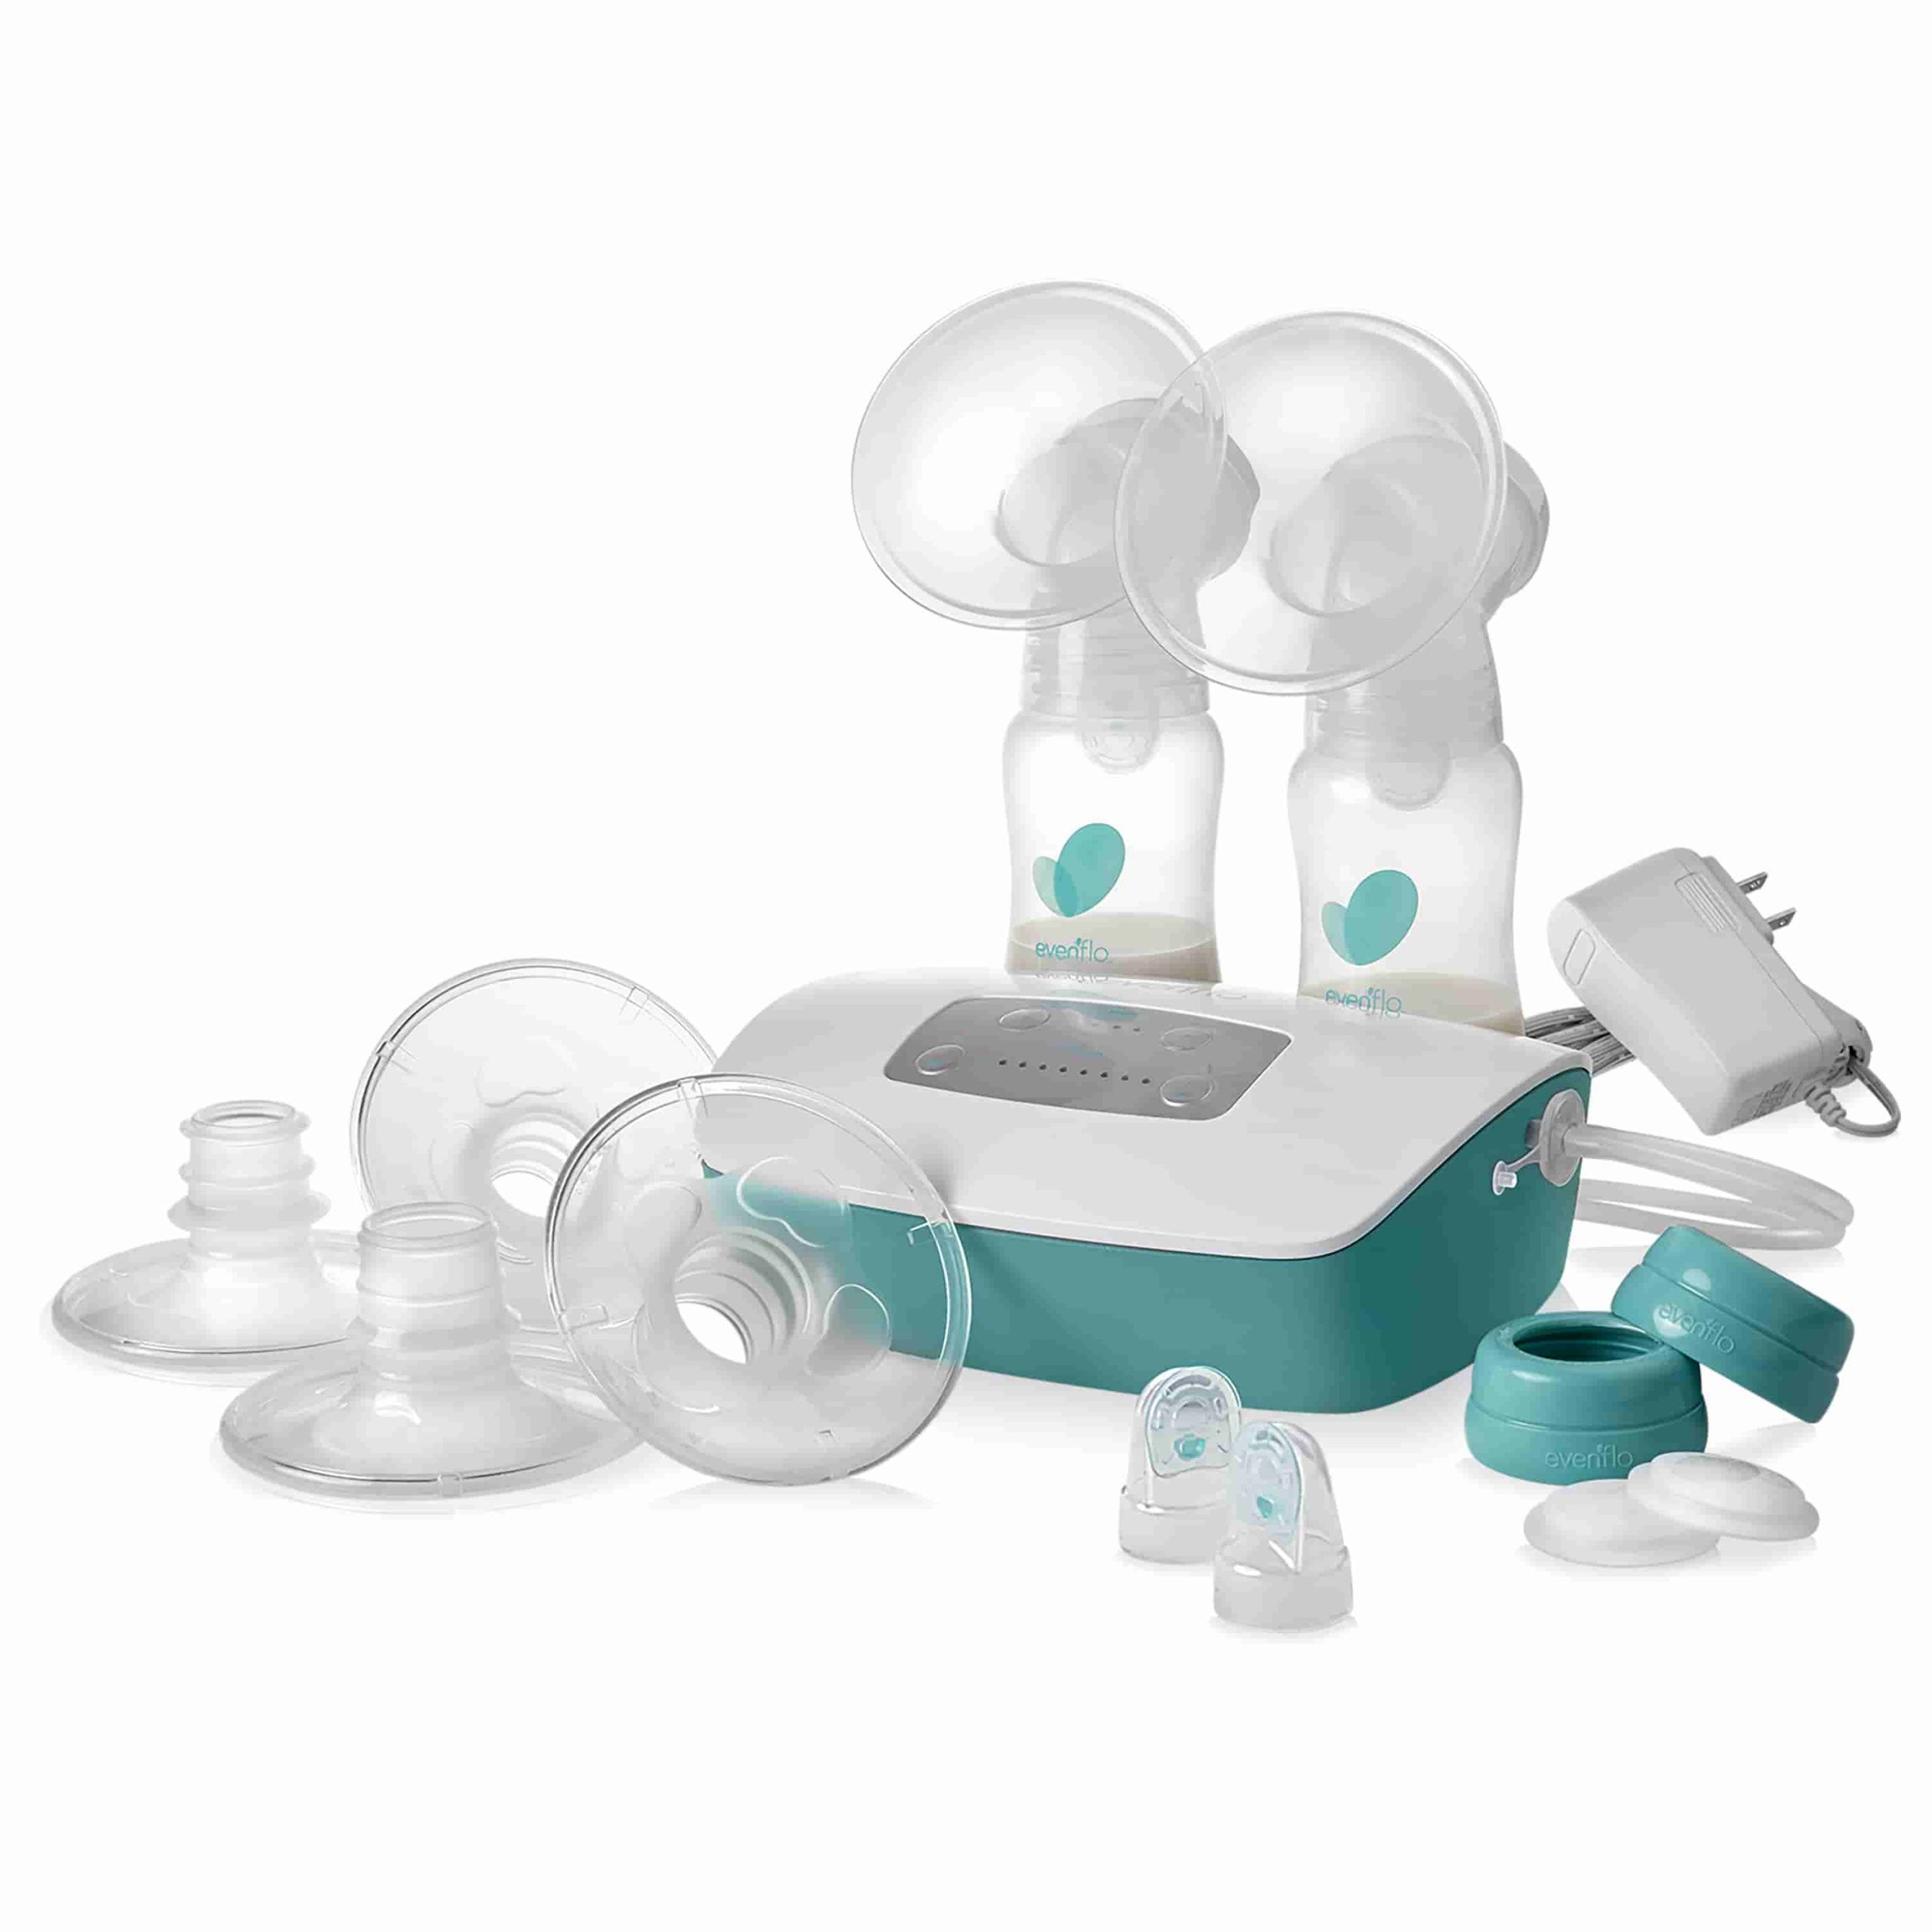 Evenflo Advanced Double Electric Breast Pump For Just 34 10 From Walmart Dansdeals Com